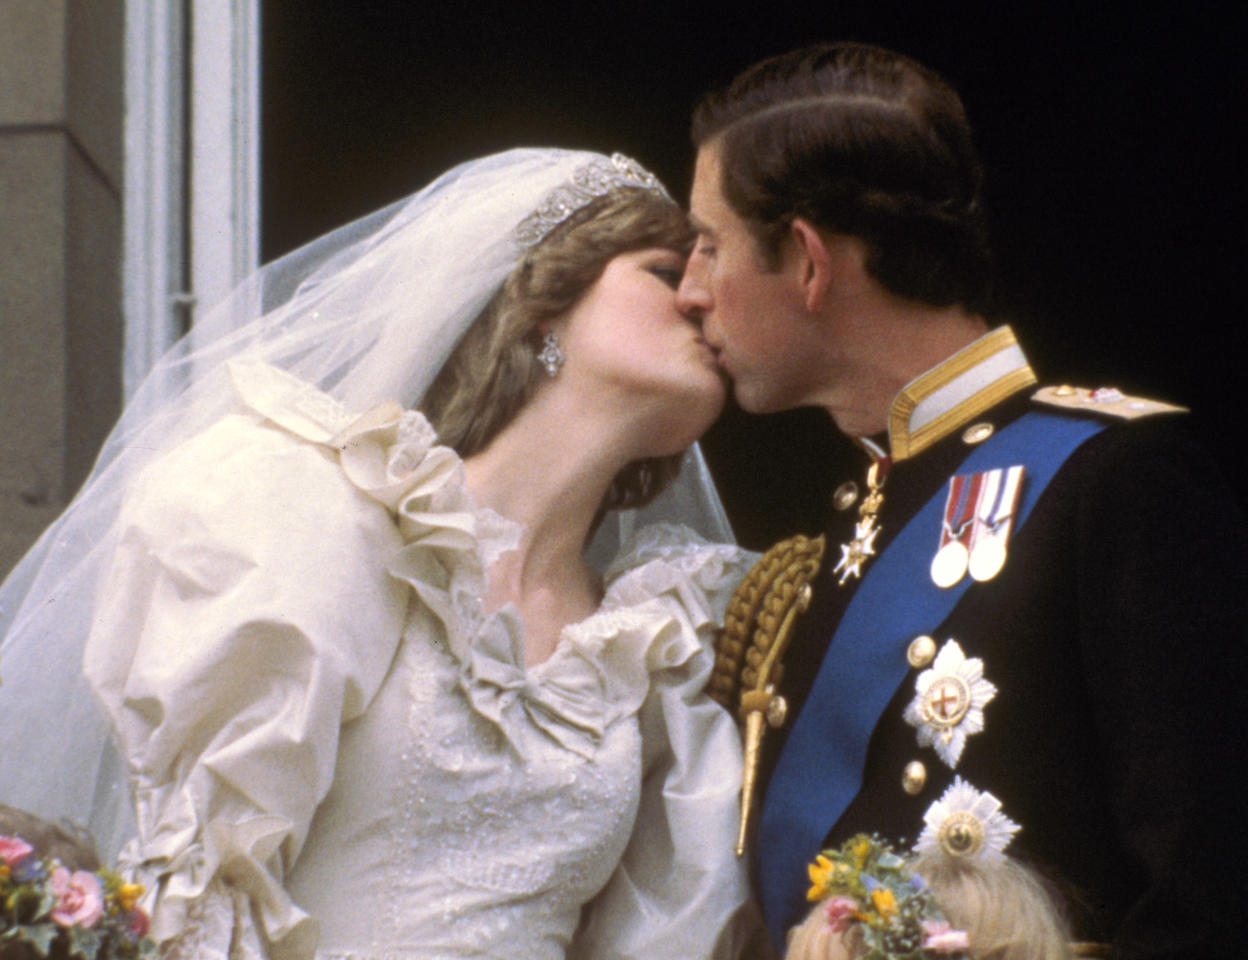 FILE - In this July 29, 1981 file photo, Britain's Prince Charles kisses his bride, the former Diana Spencer, on the balcony of Buckingham Palace in London, after their wedding, in this July 29, 1981 file photo. Princess Diana would have been 50 years old on Friday, July 1, 2011, perhaps the only certainty about the course of a life abruptly cut short in a 1997 car crash in Paris, with a new boyfriend, two months past her 36th birthday. (AP Photo/file)